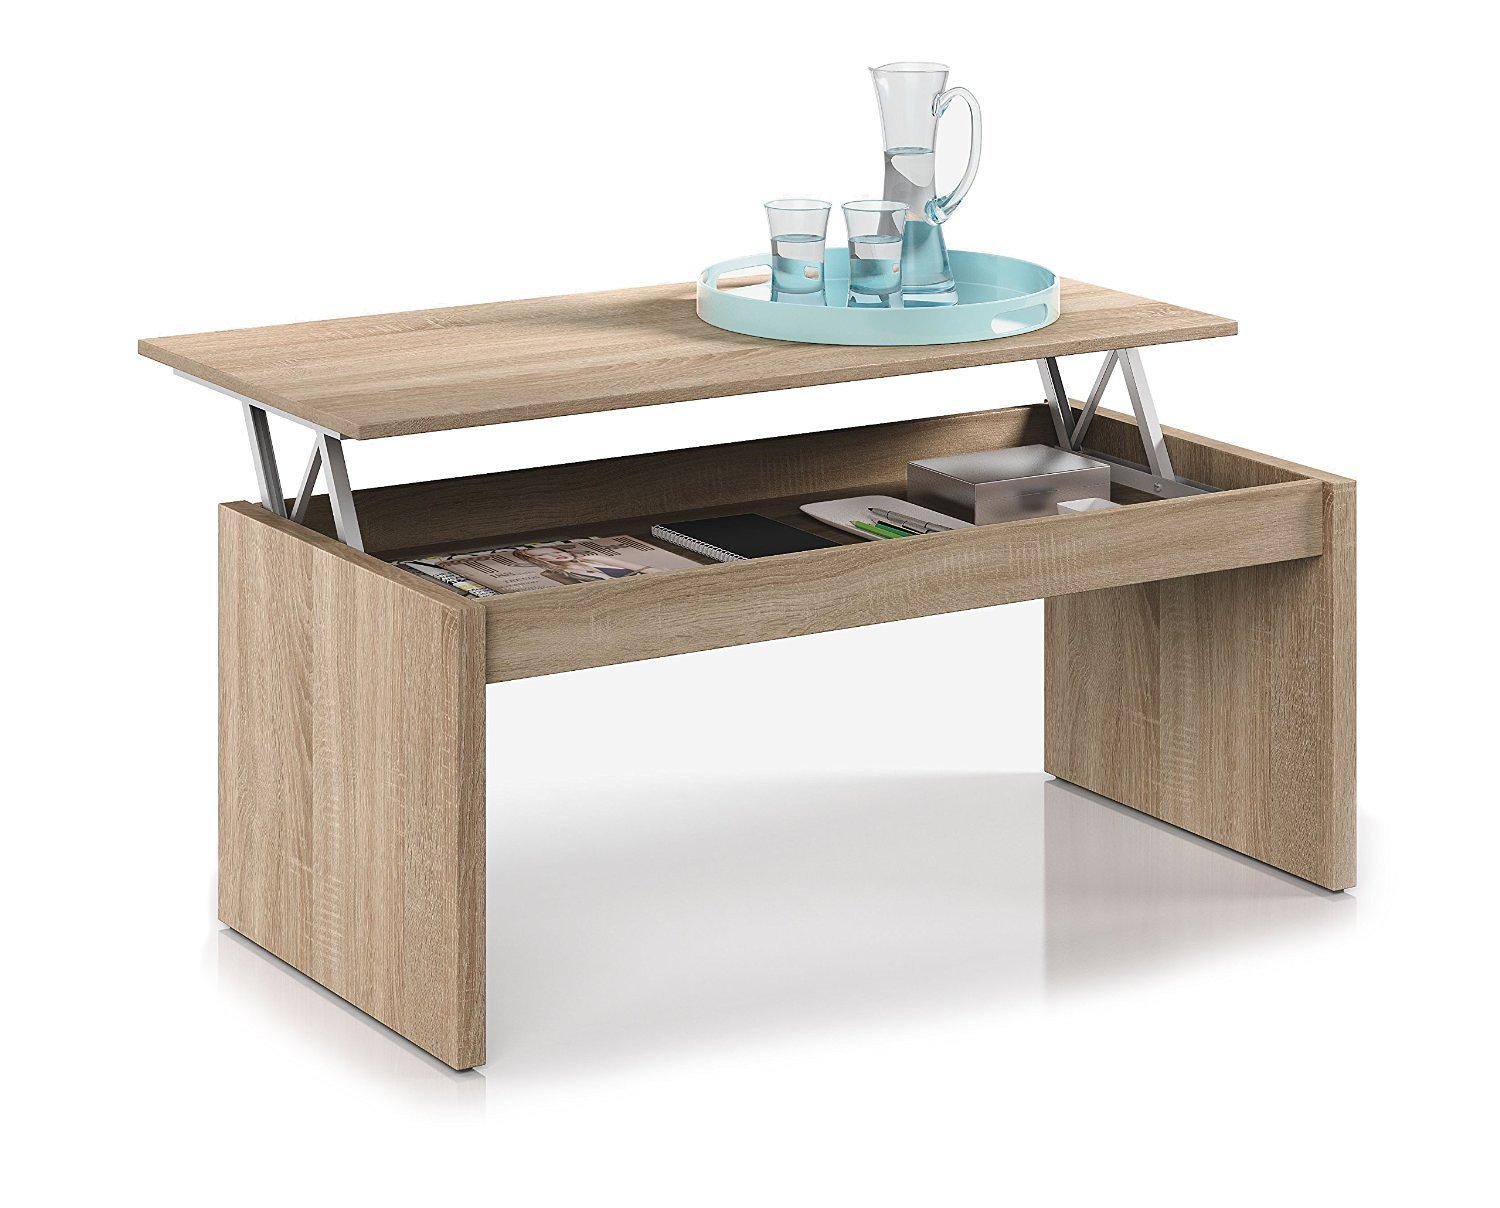 Fabulous habitdesign f table basse chne naturel avec for Table a manger ikea